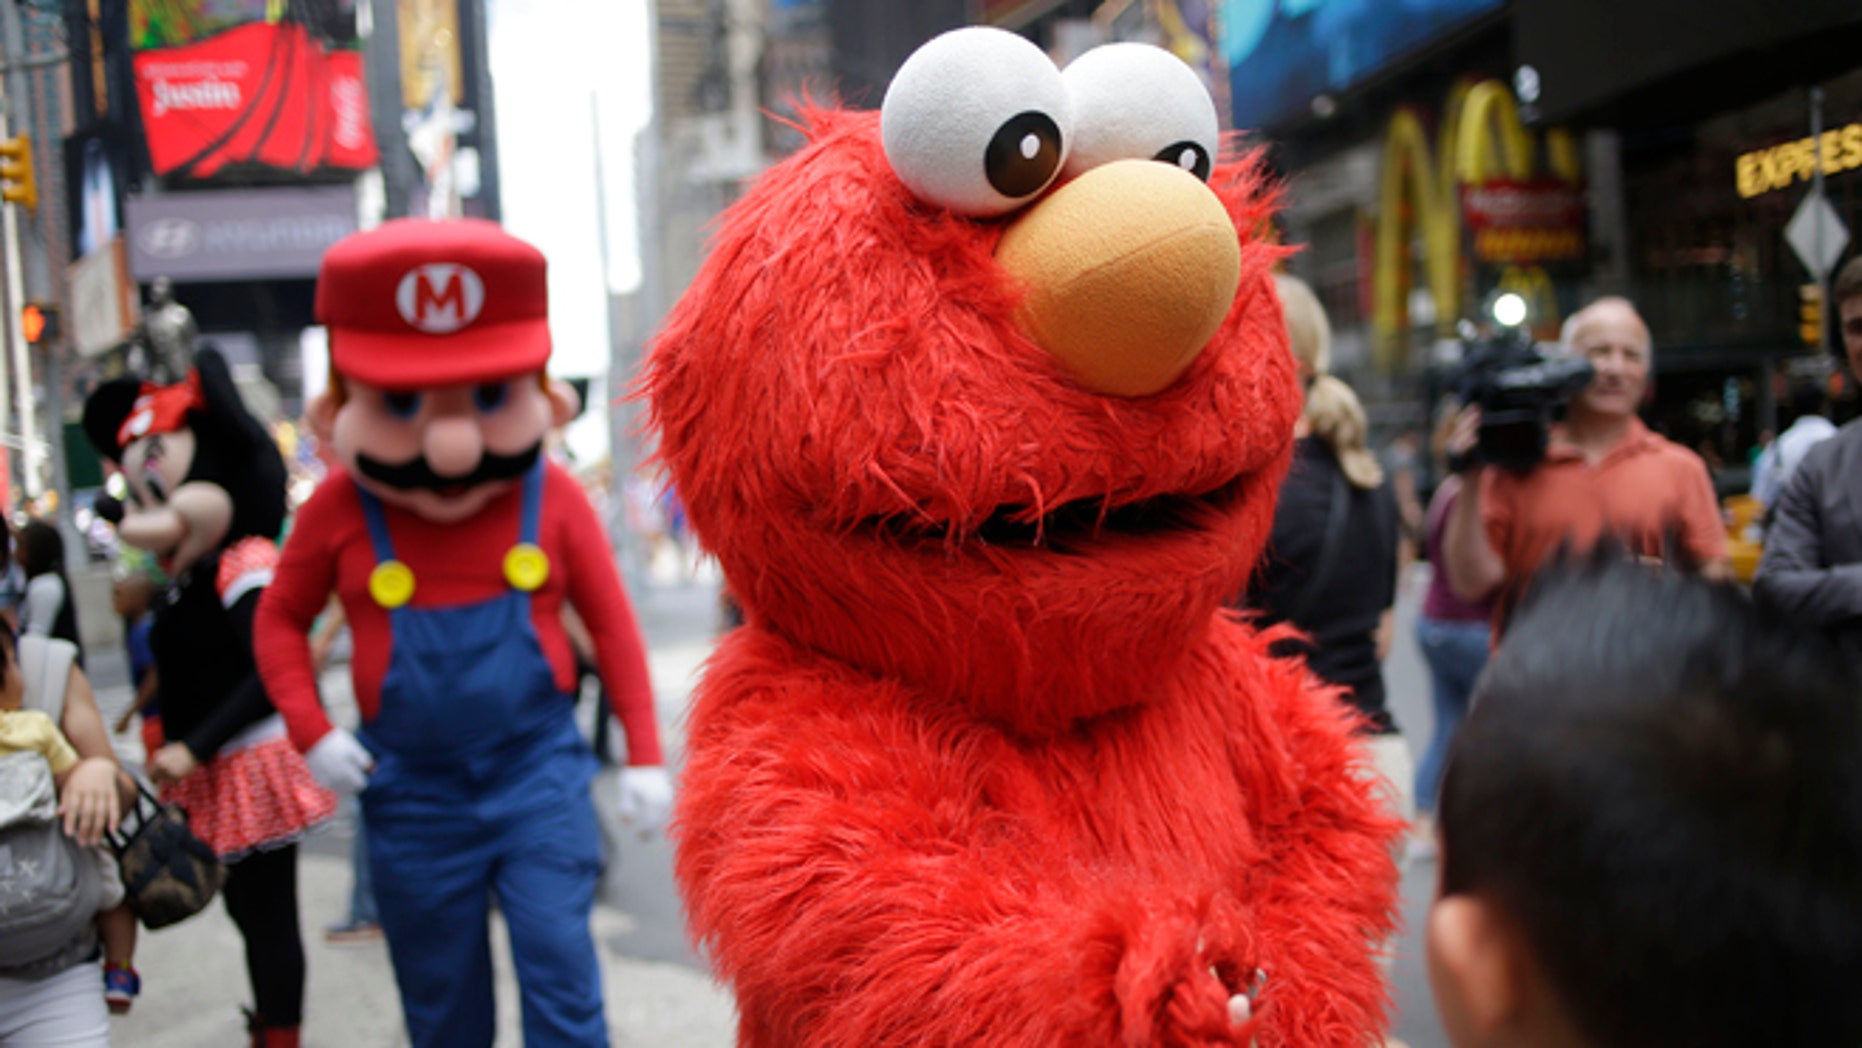 A person dressed as Elmo shakes hands with a pedestrian in Times Square on Monday, July 28, 2014 in New York. New York City Mayor Bill de Blasio said Monday that he believes the people wearing character costumes in Times Square should be licensed and regulated. Dozens of people dressed as kids favorites like Elmo, Cookie Monster and Batman stand near 42nd Street and pose for photos with tourists in exchange for money. De Blasio said the practice has gone too far.  A man dressed as Spider-man was arrested Saturday, July 28, 2014, after punching a police officer who told him to stop harassing tourists.  The City Council is working on legislation that would require the characters to get a city-approved license.  (AP Photo/Seth Wenig)